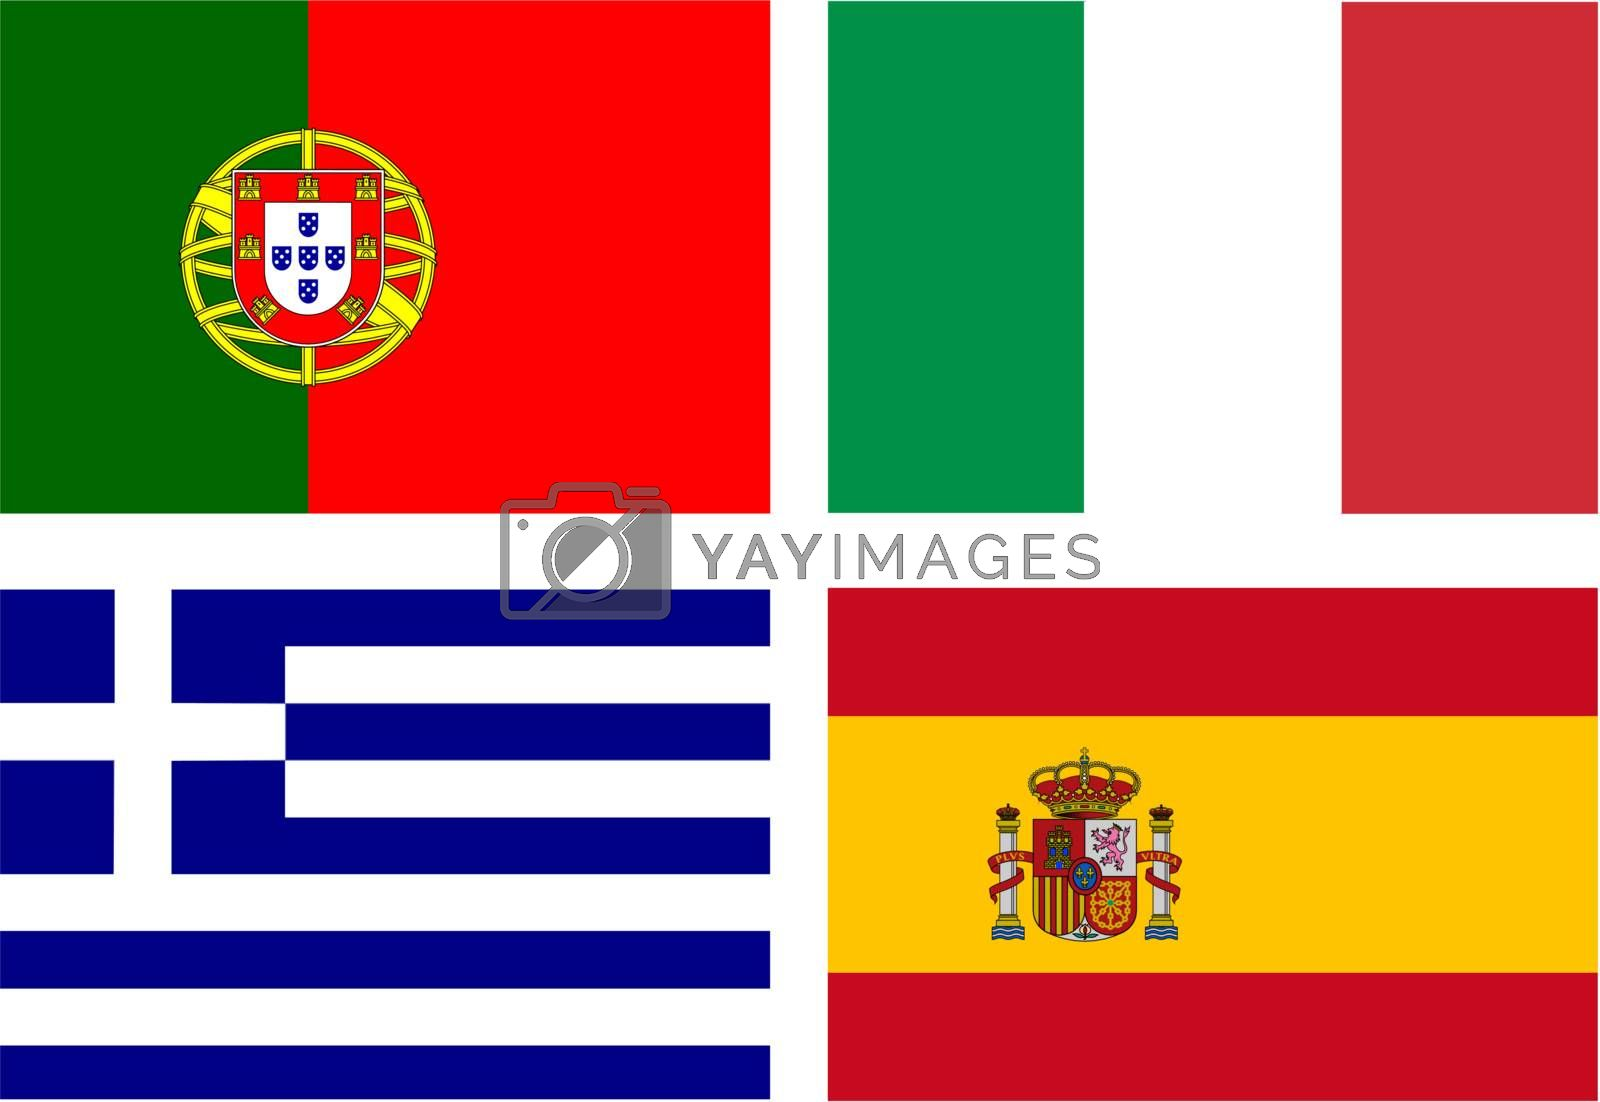 flags of the PIGS (Portugal, Italy, Greece, Spain) - eurozone countries with a serious financial crisis -  isolated vector illustration